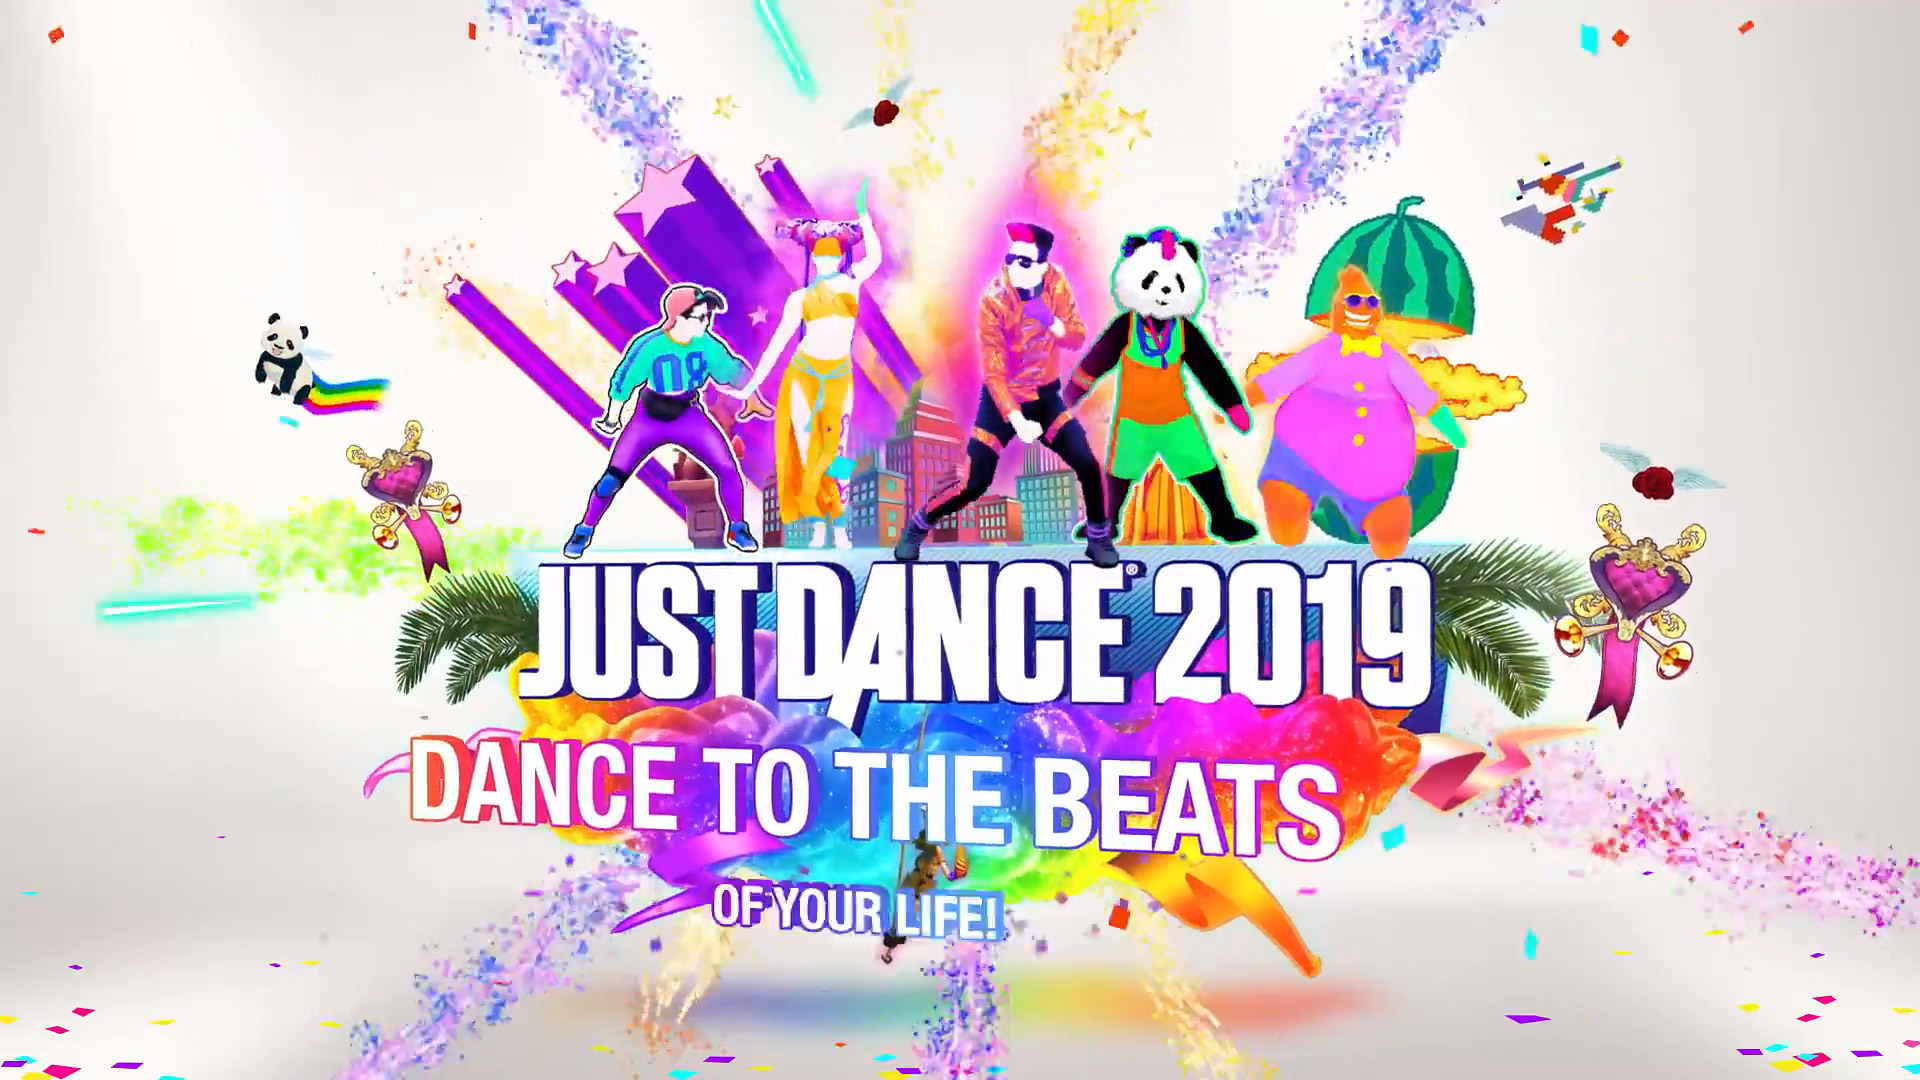 Free Just Dance 2019 Wallpaper in 1920x1080